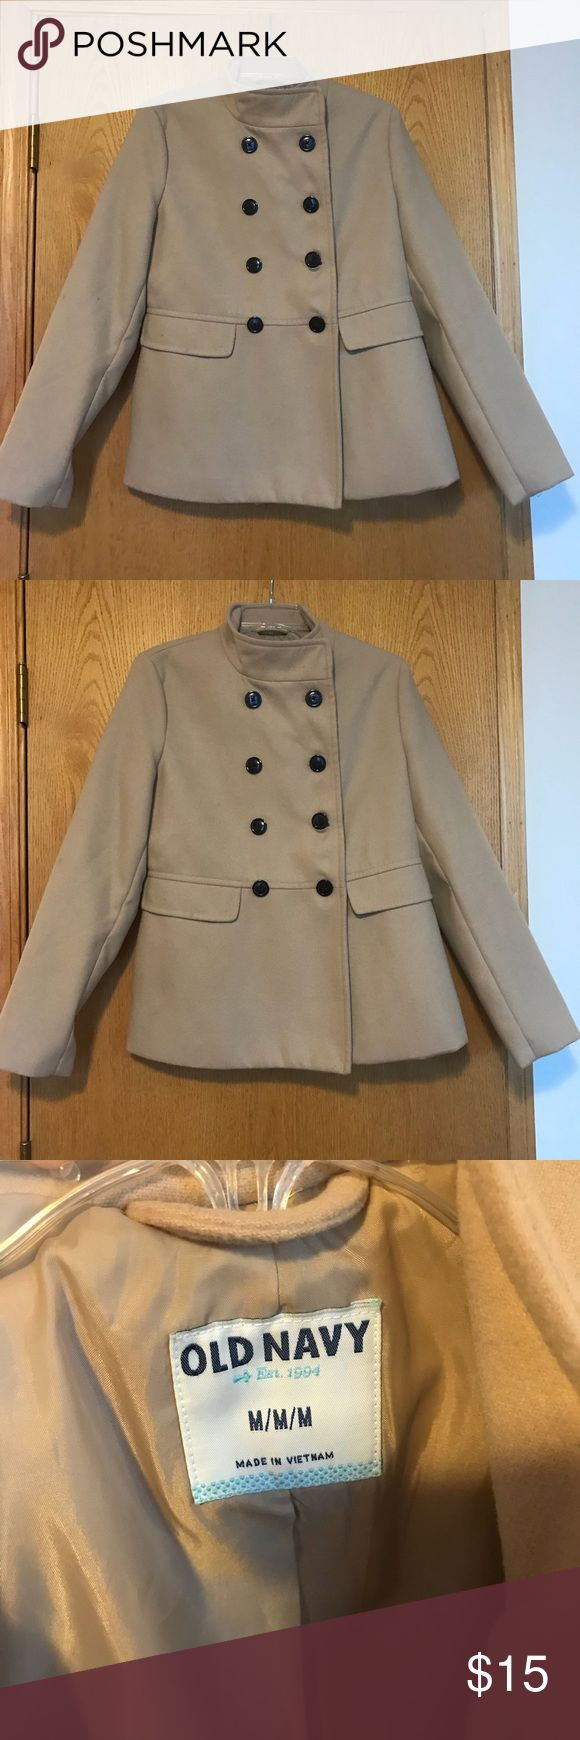 Old navy pea coat Tan with black buttons.  Great condition Old Navy Jackets & Coats Pea Coats